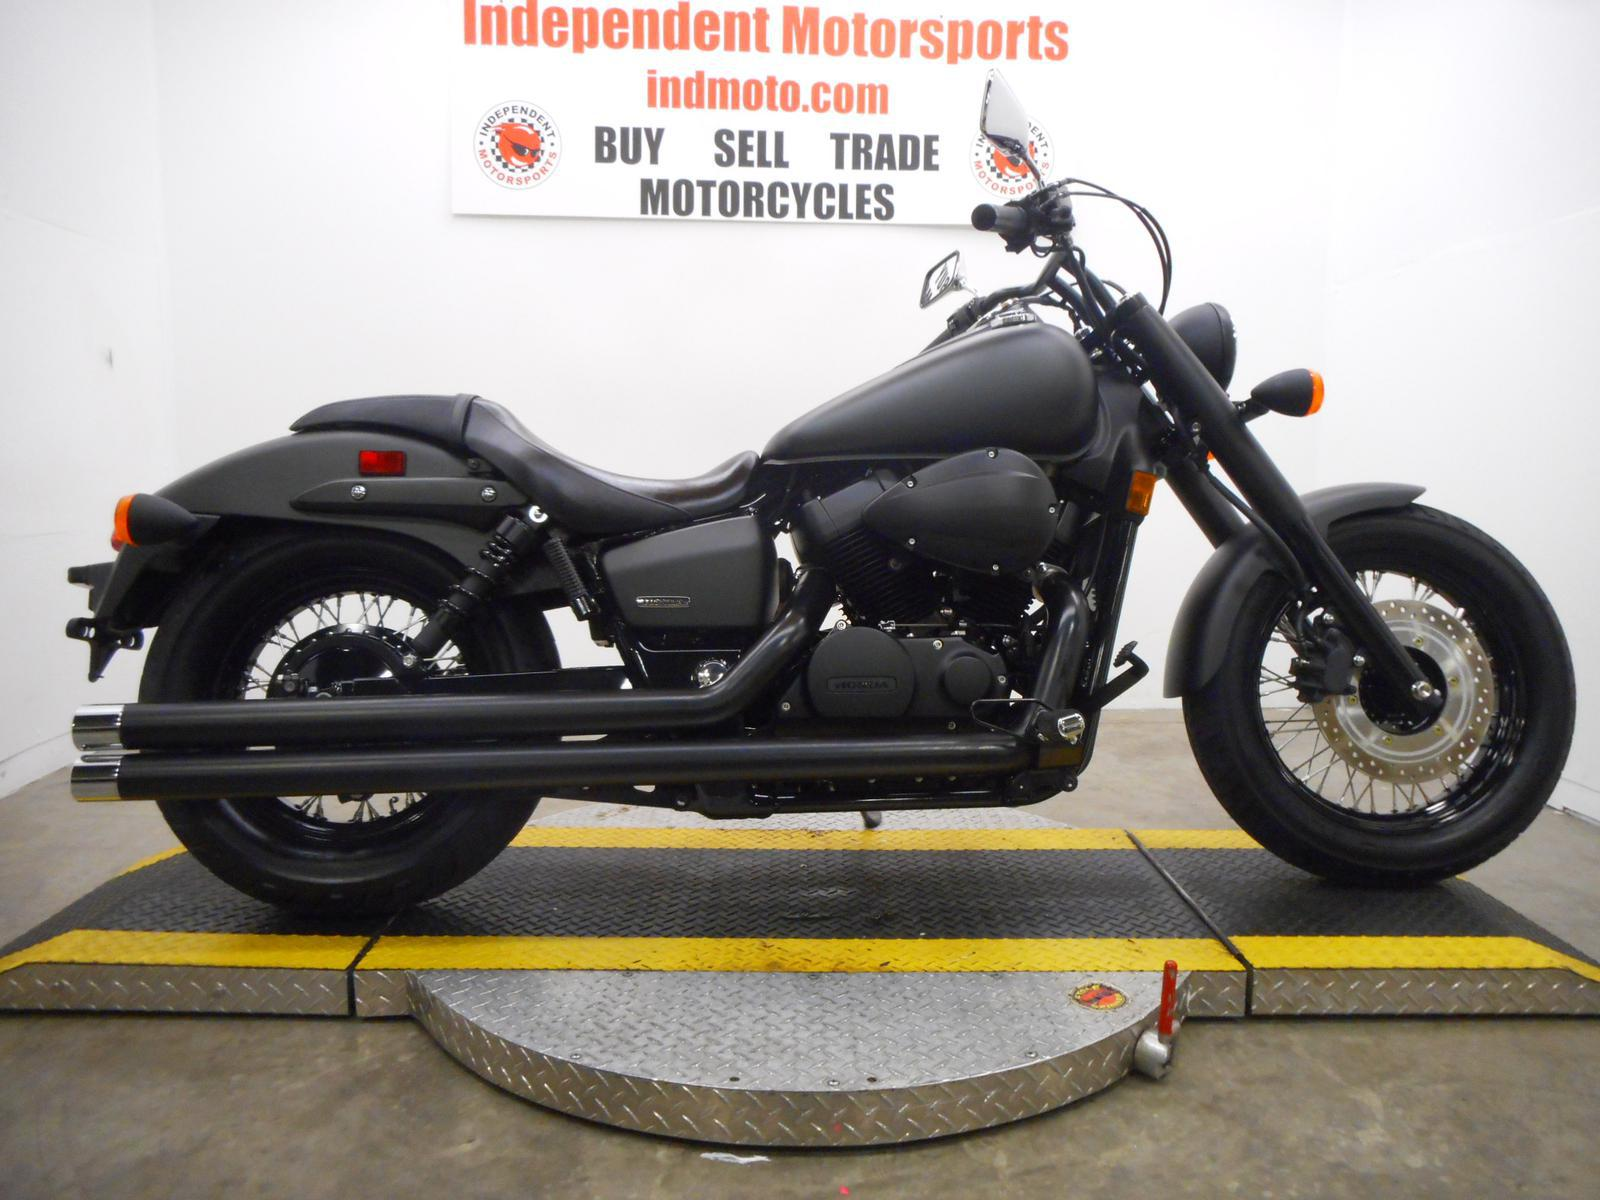 2015 Honda Shadow Phantom VT750 Aero Ace 750 Like New Used Motorcycles  Columbus Ohio Buy Sell Trade